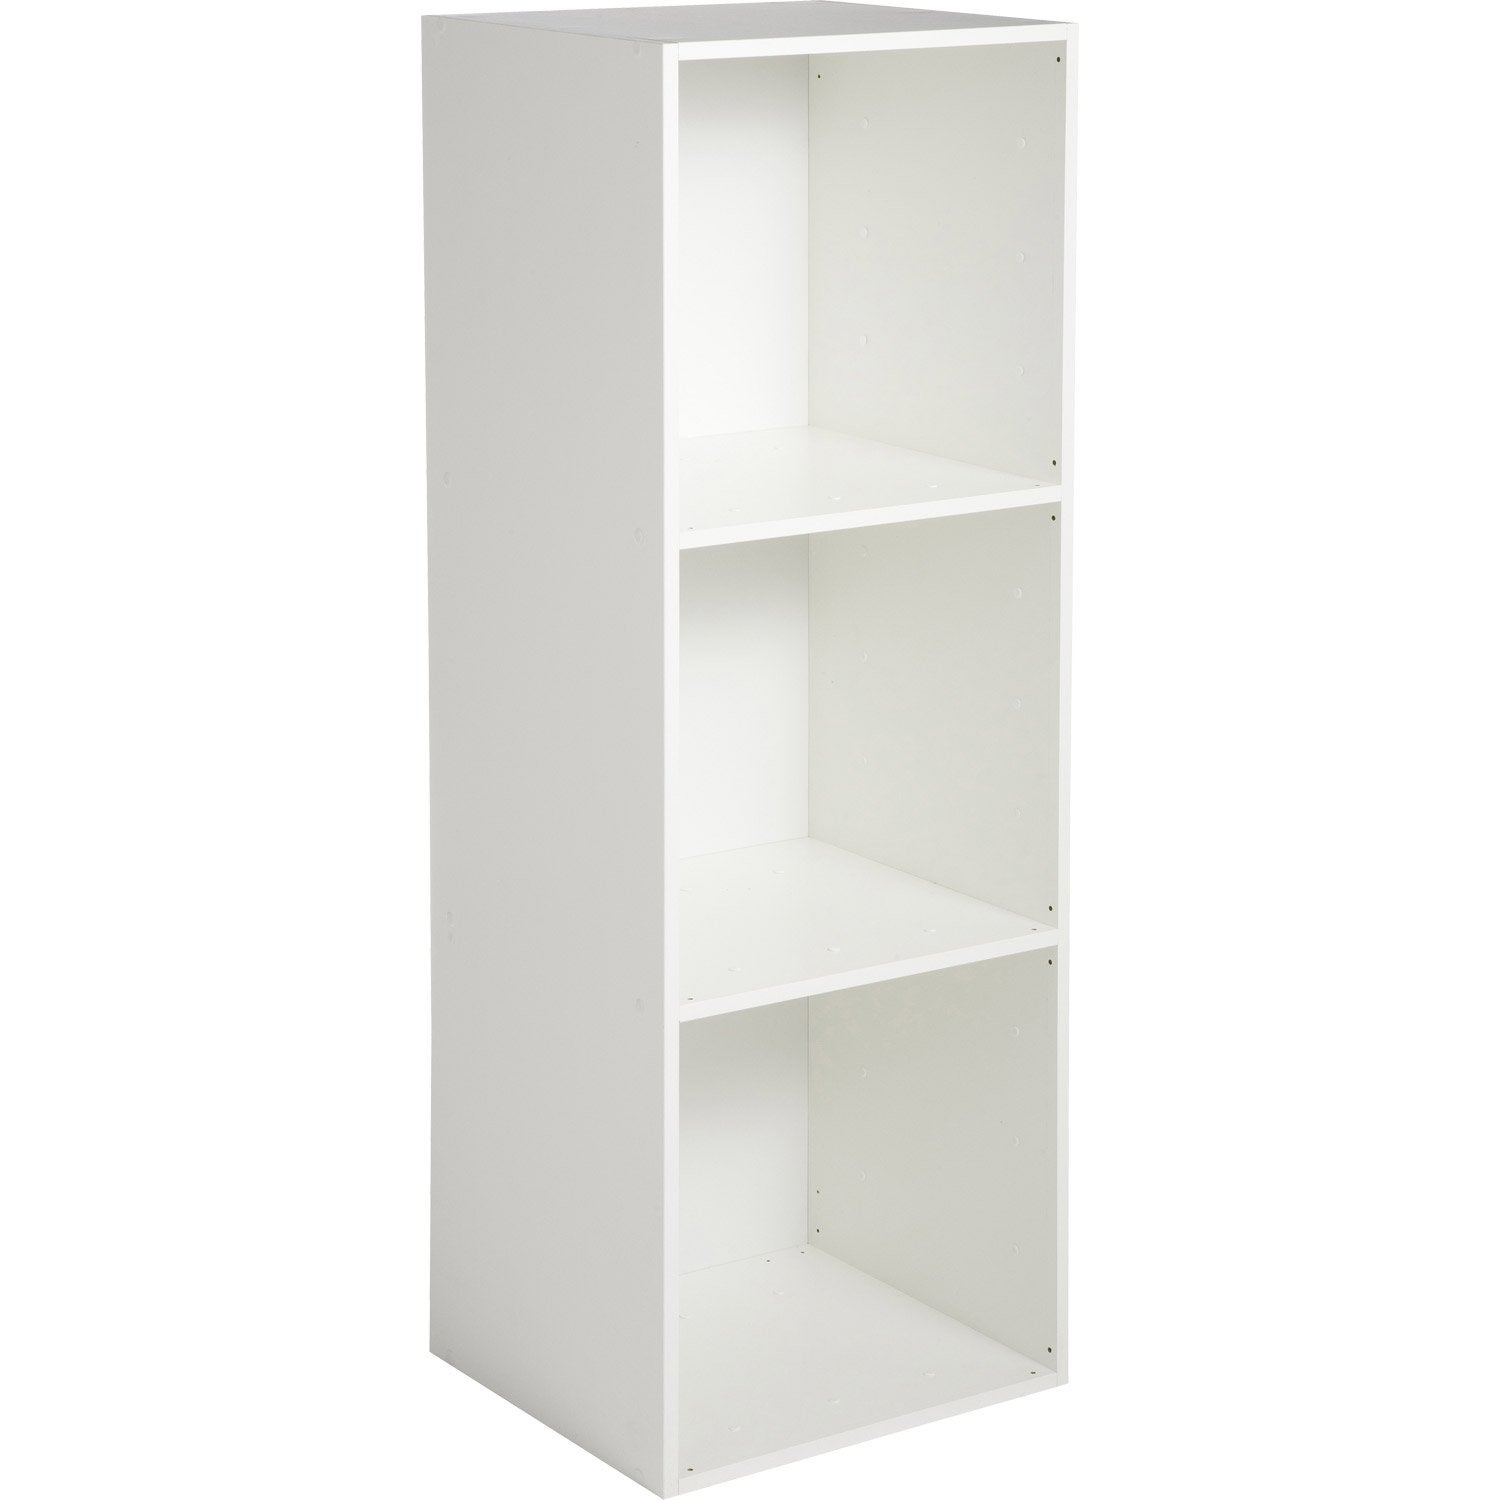 Etag re 3 cases multikaz blanc x x - Etagere modulable leroy merlin ...